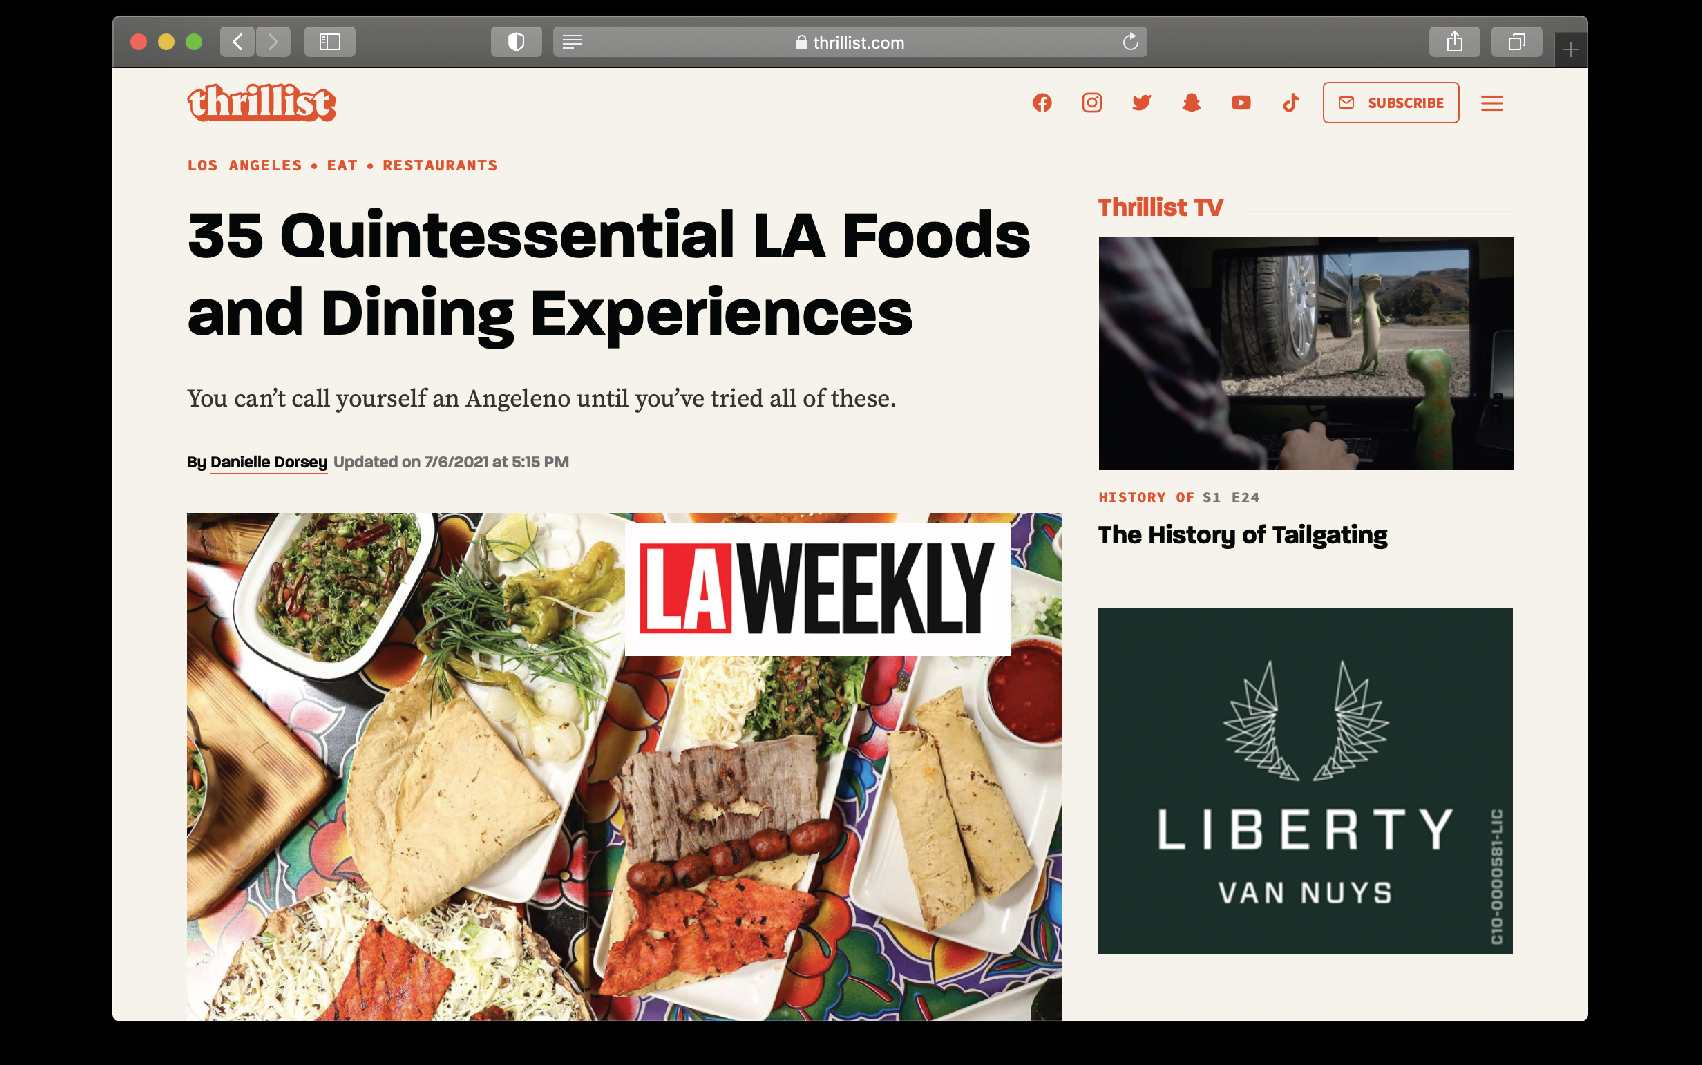 Thumbnail preview of Thrillist article